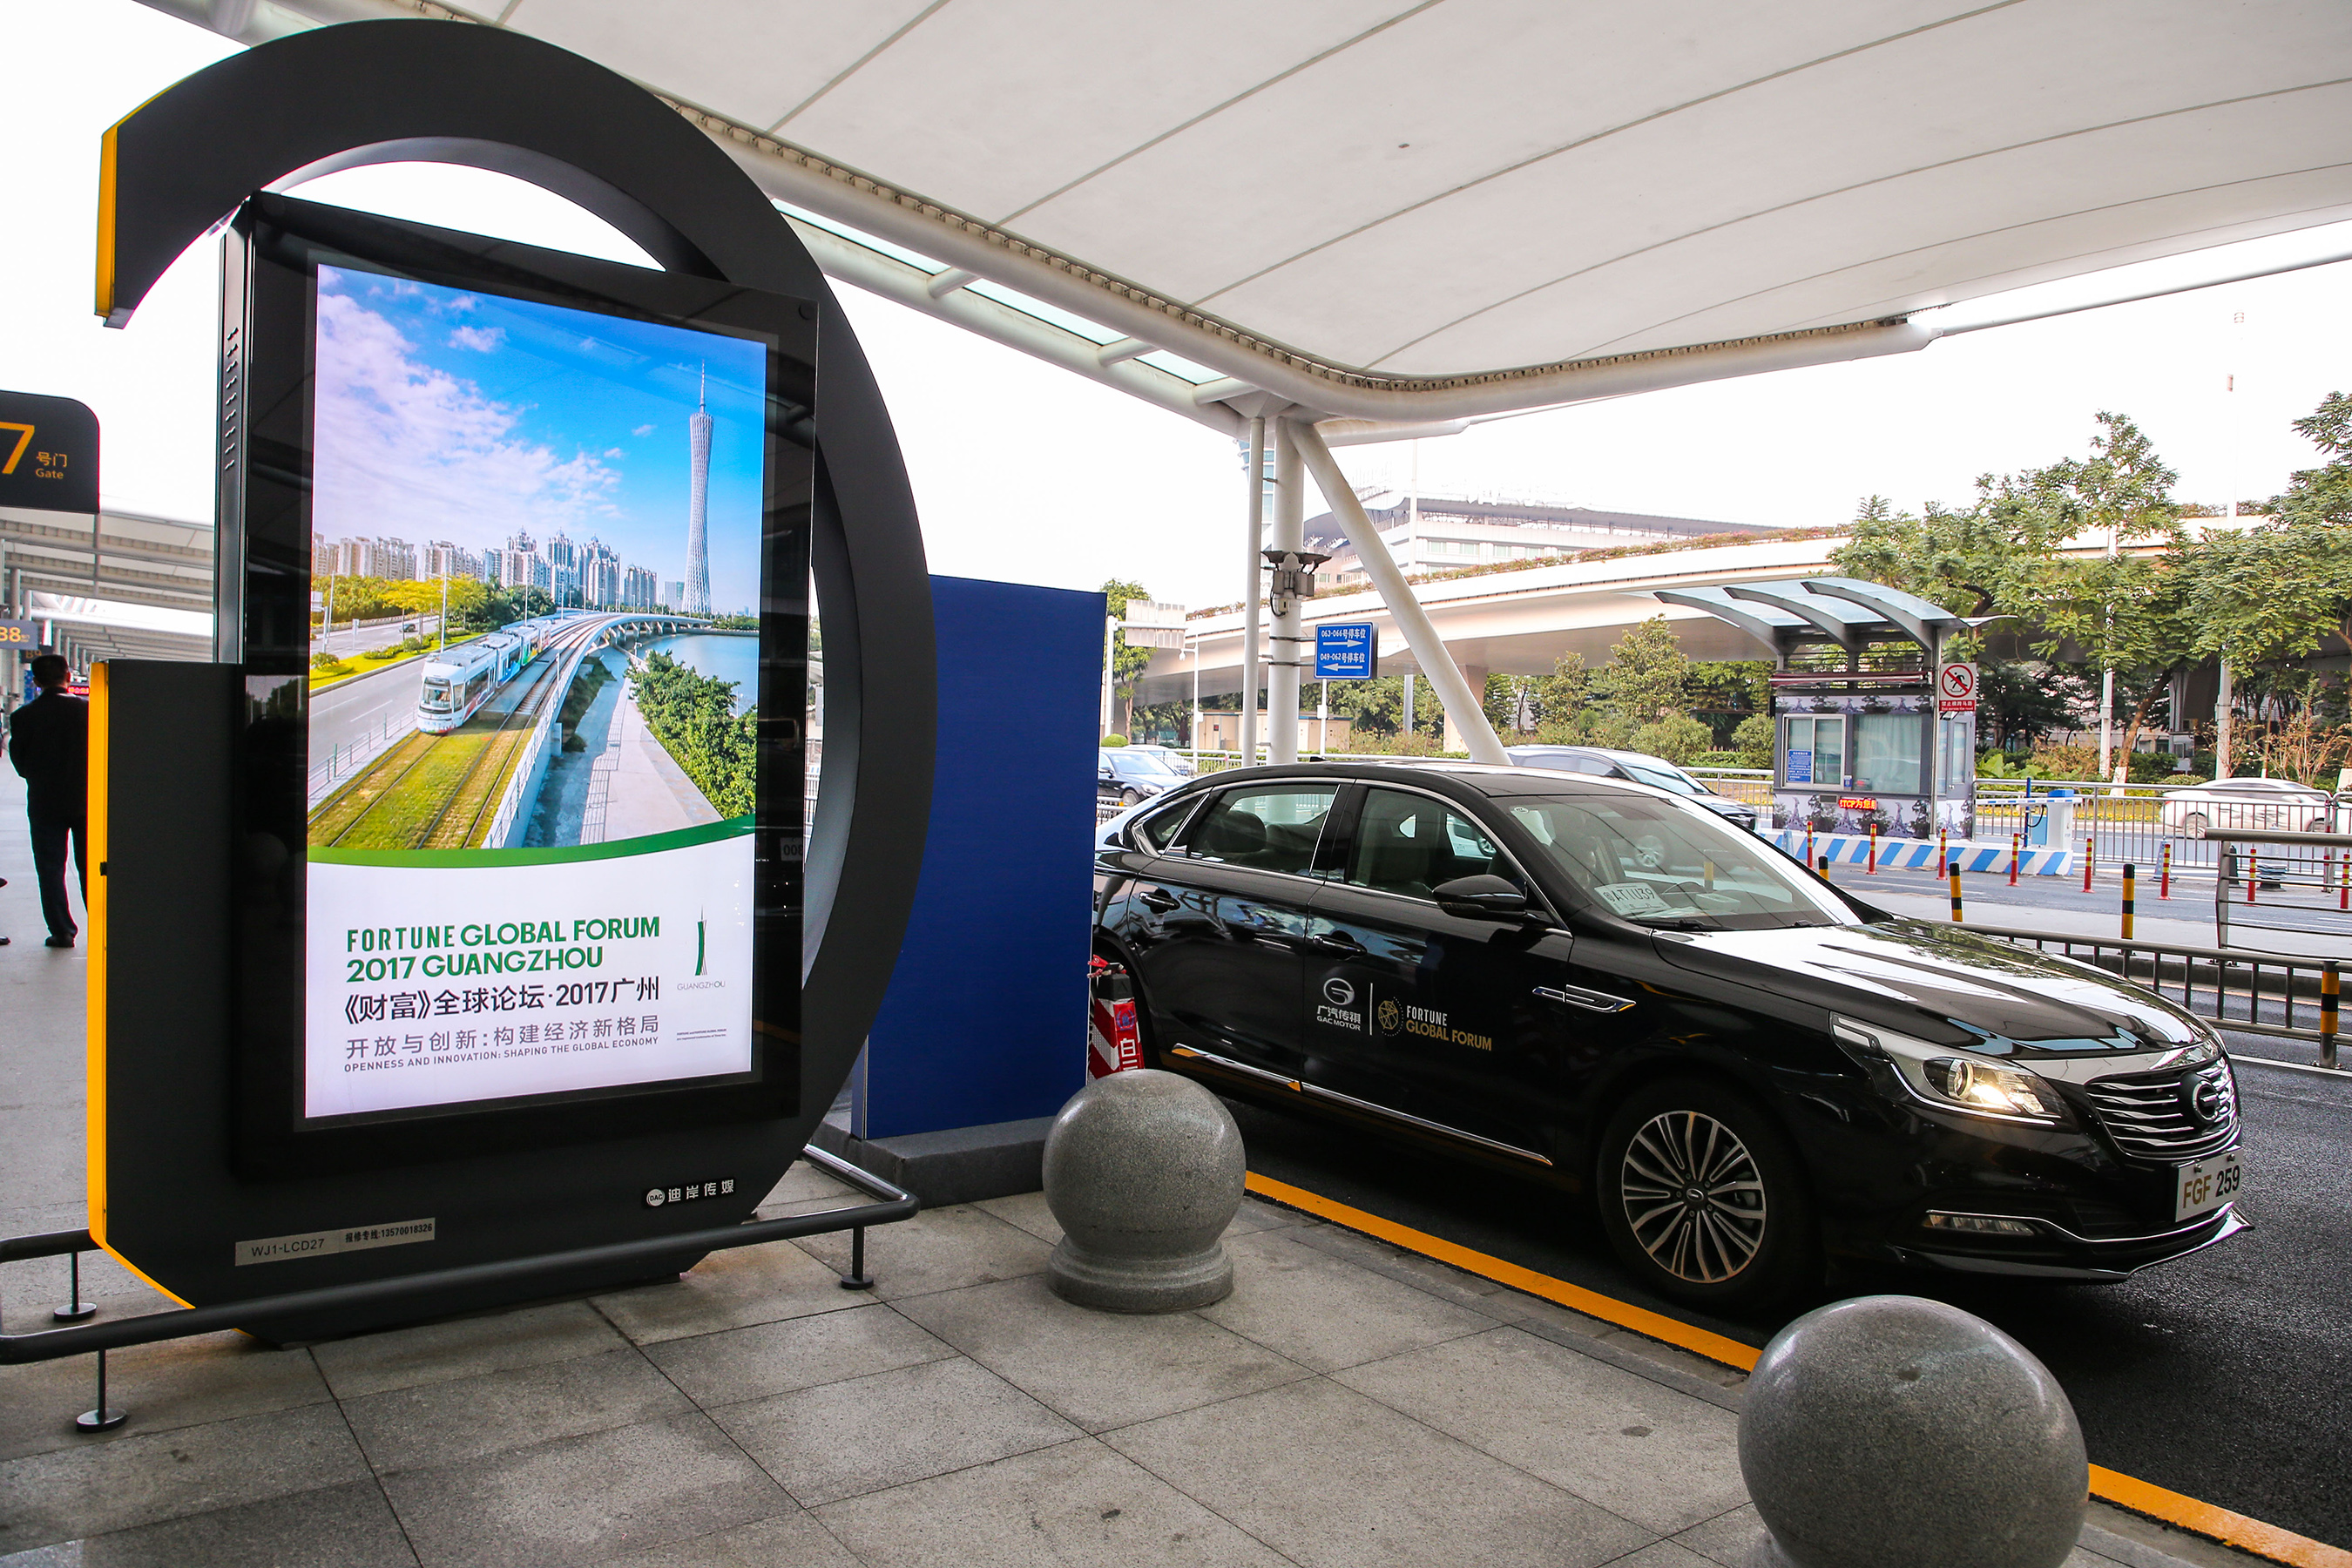 GAC Motor's Vehicles Showcase China's Achievements In Innovative Auto-making at Gathering of World's Leaders in Business and Finance